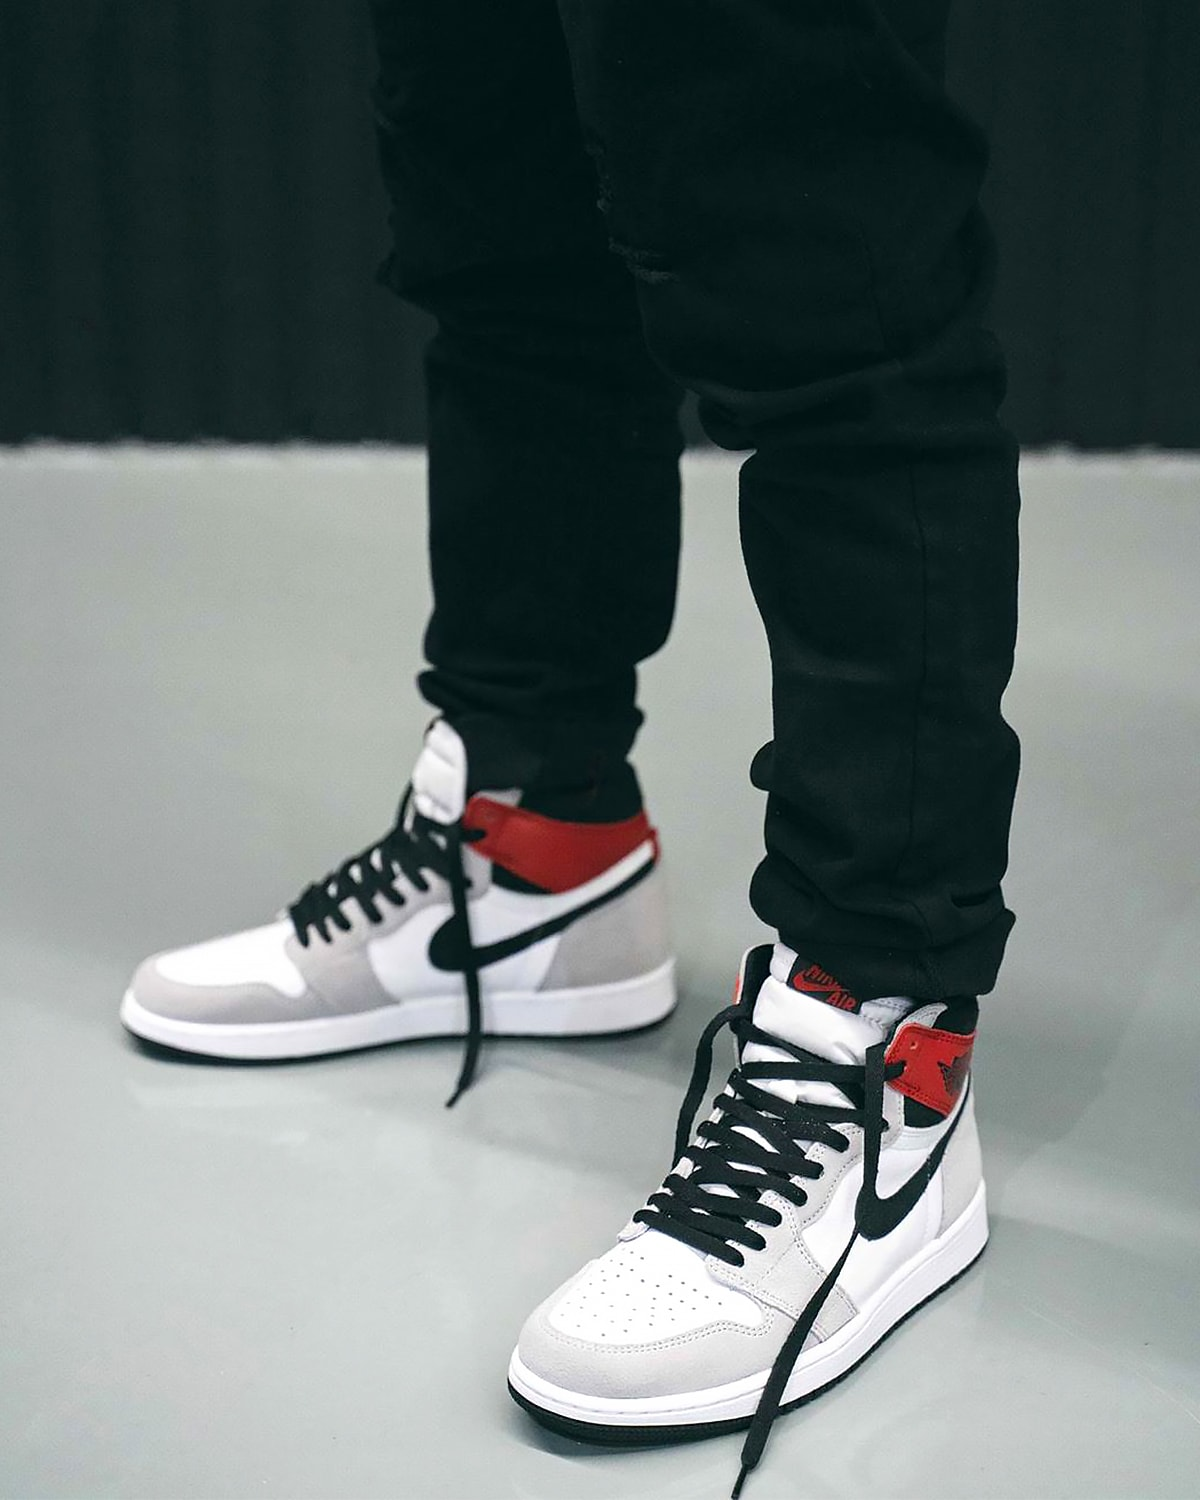 nike air jordan 1 high on feet